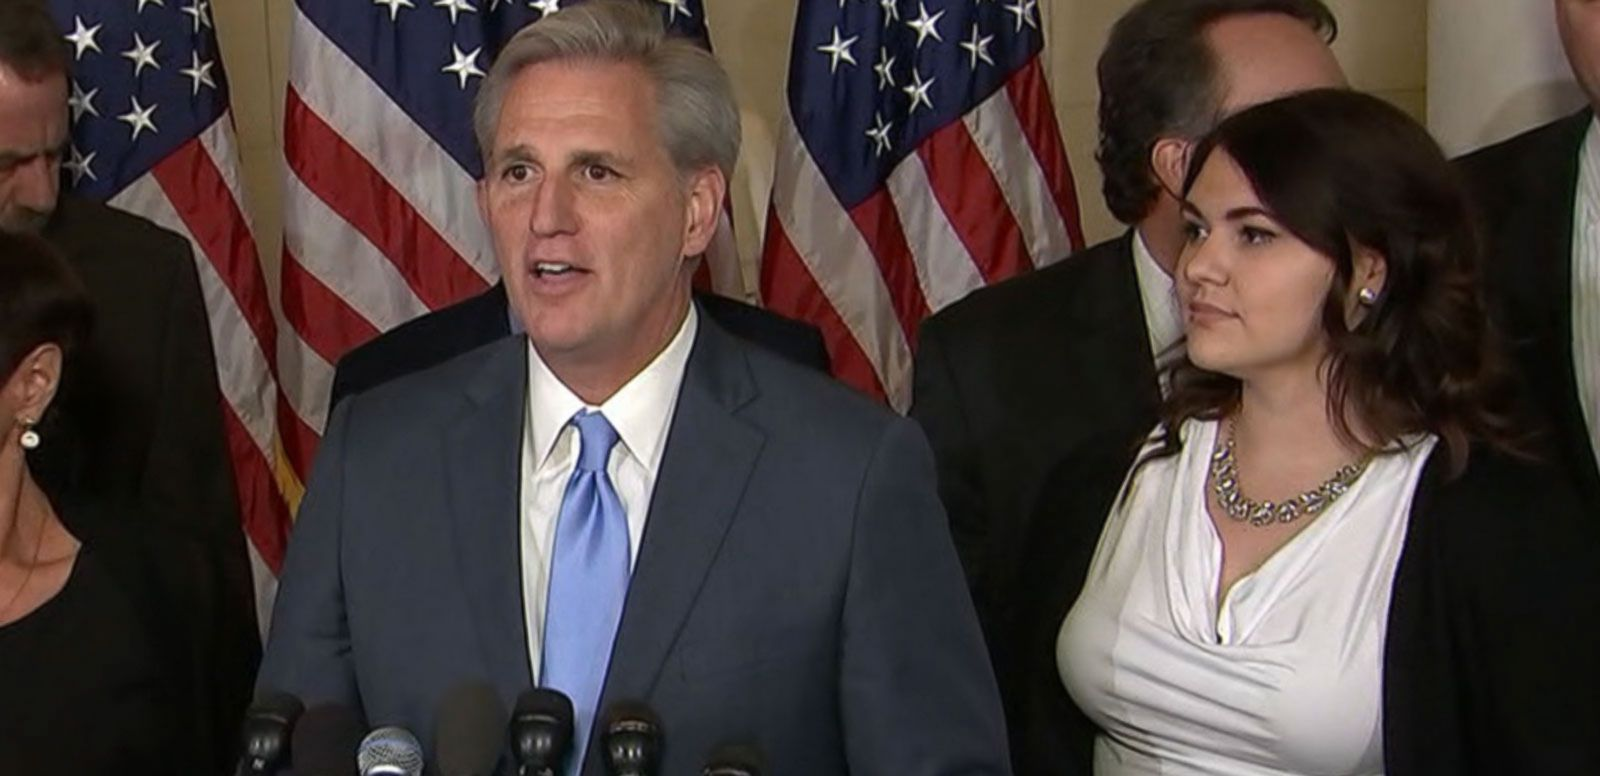 VIDEO: House in Chaos After Kevin McCarthy Drops Speaker Bid